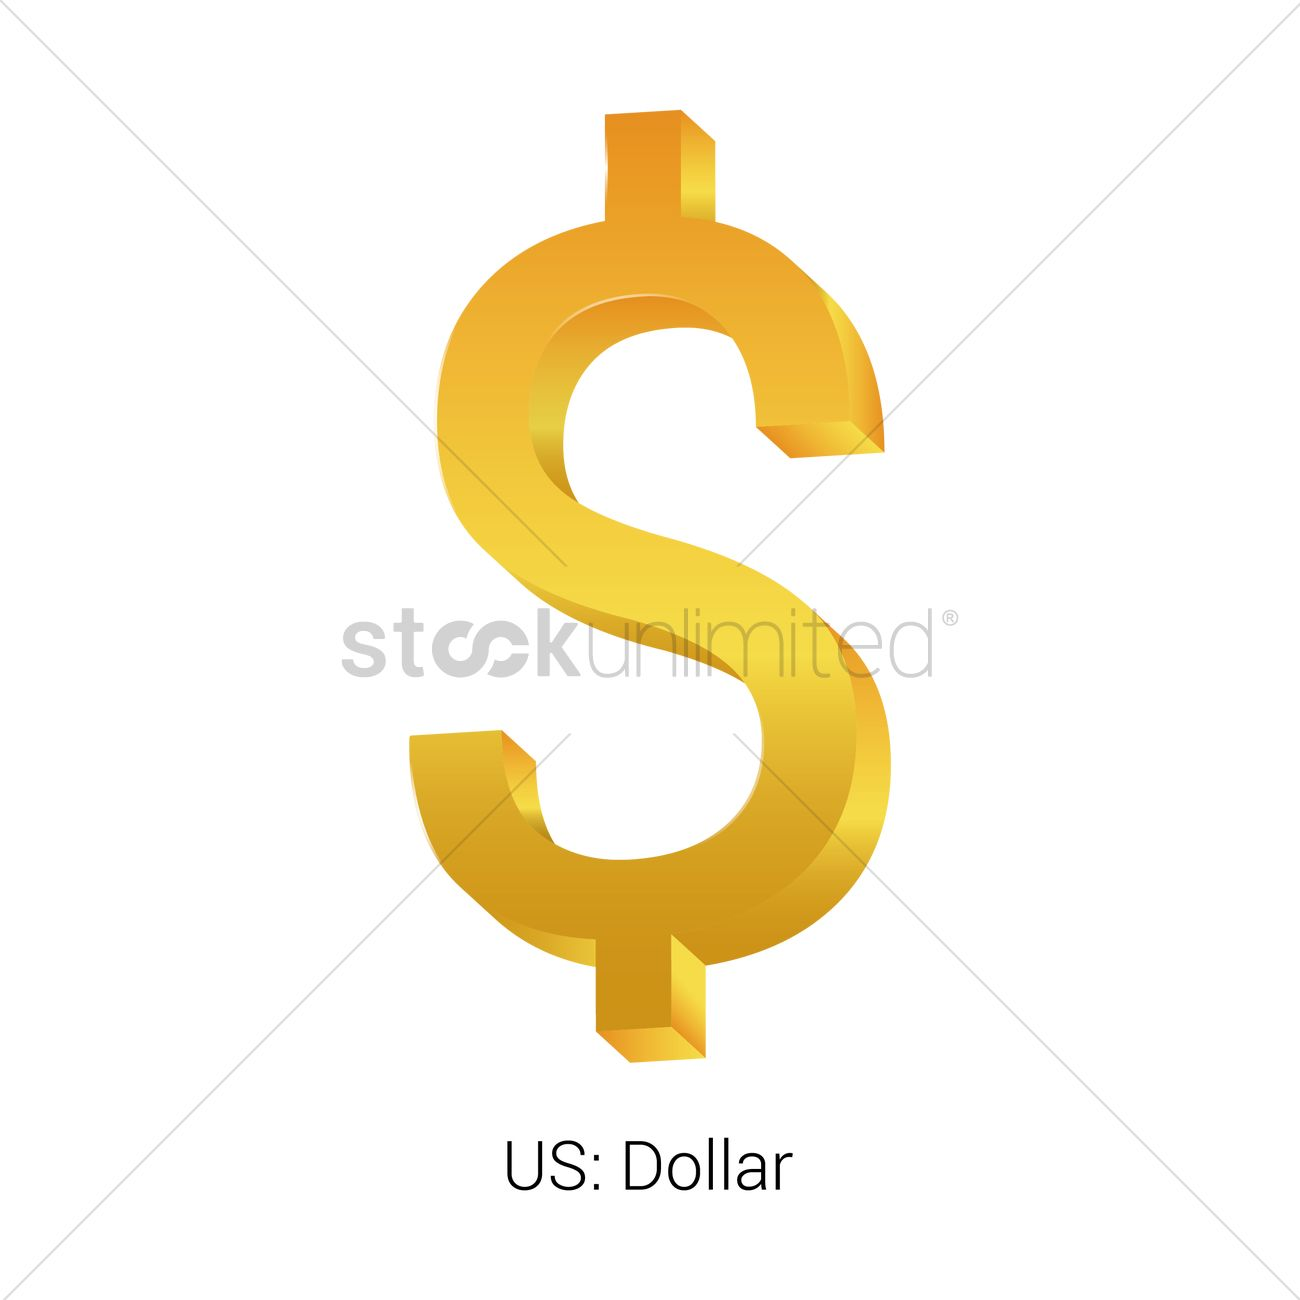 Dollar Currency Symbol Vector Image 1821535 Stockunlimited